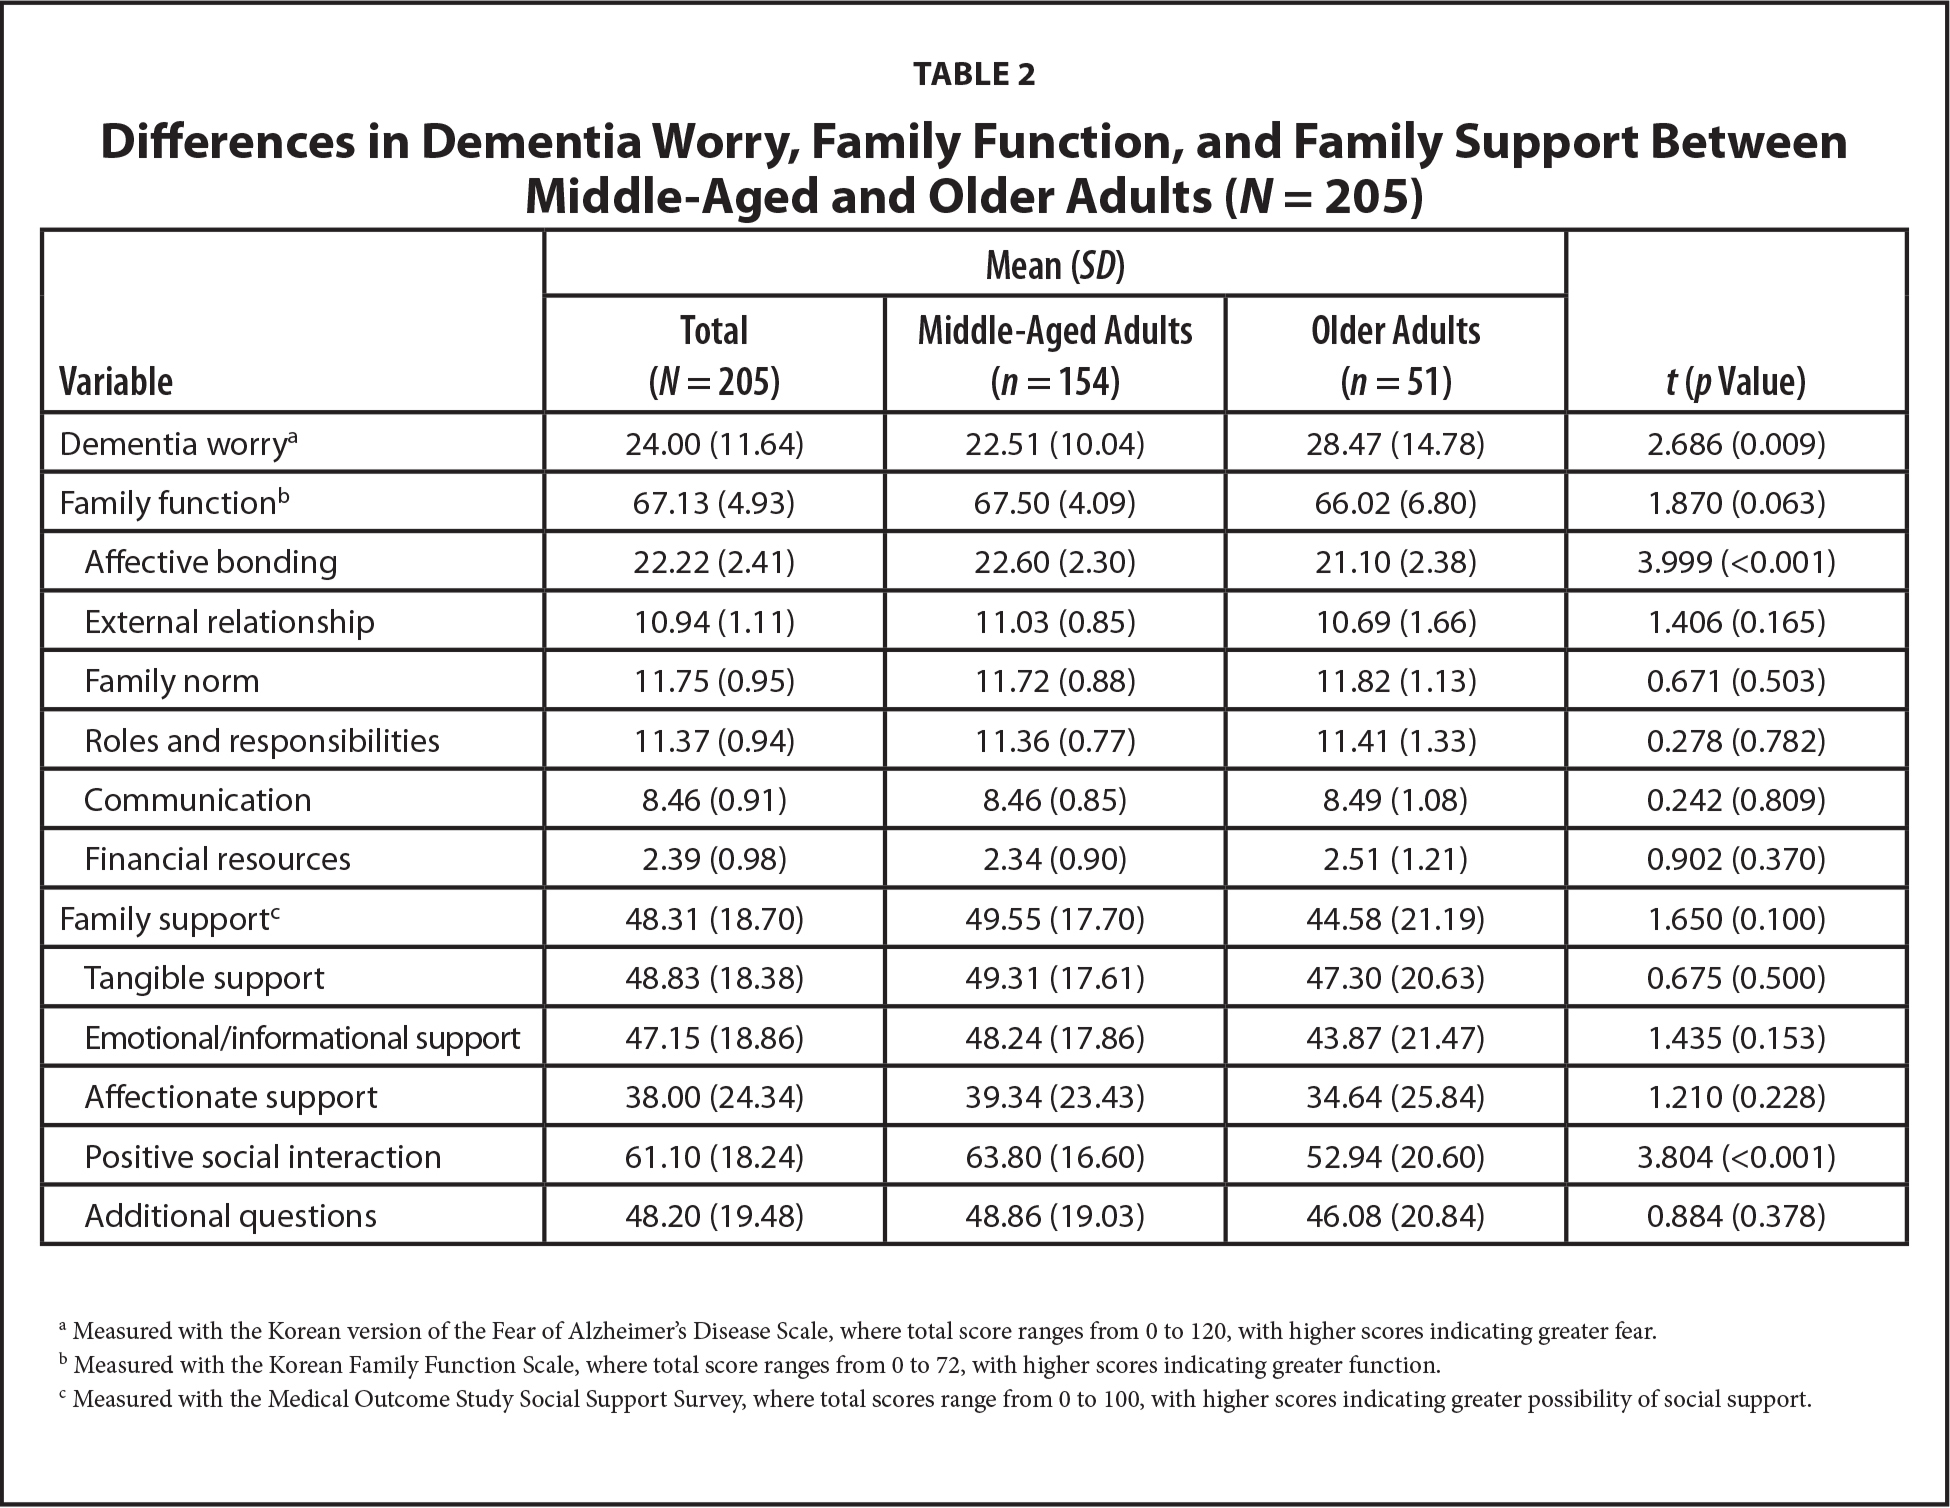 Differences in Dementia Worry, Family Function, and Family Support Between Middle-Aged and Older Adults (N = 205)